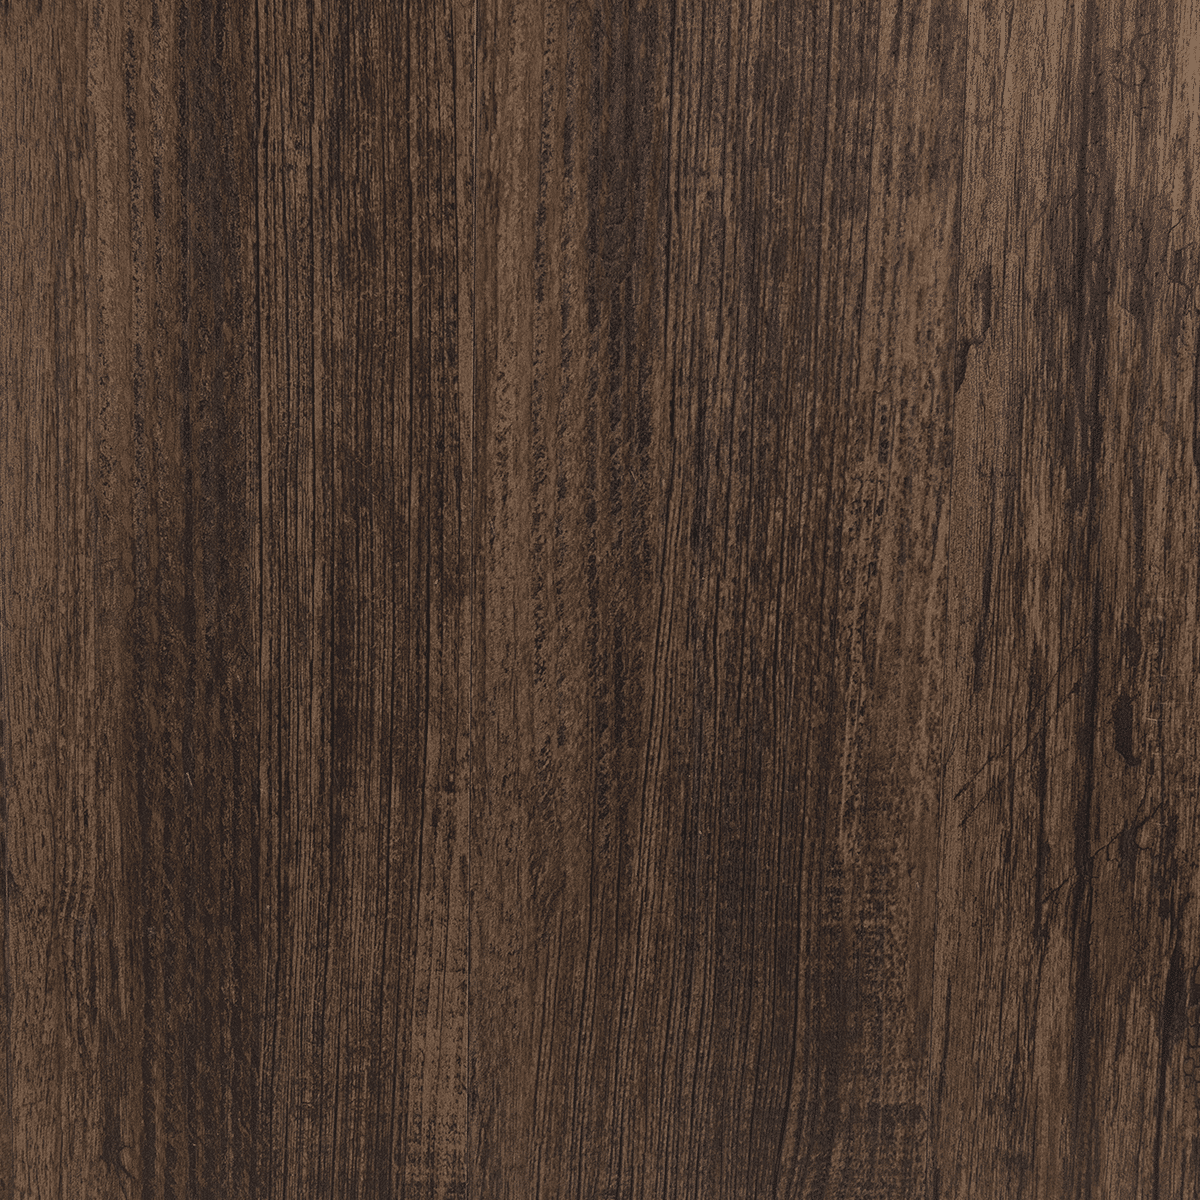 Mohawk Batavia Coffee Bean Luxury Vinyl